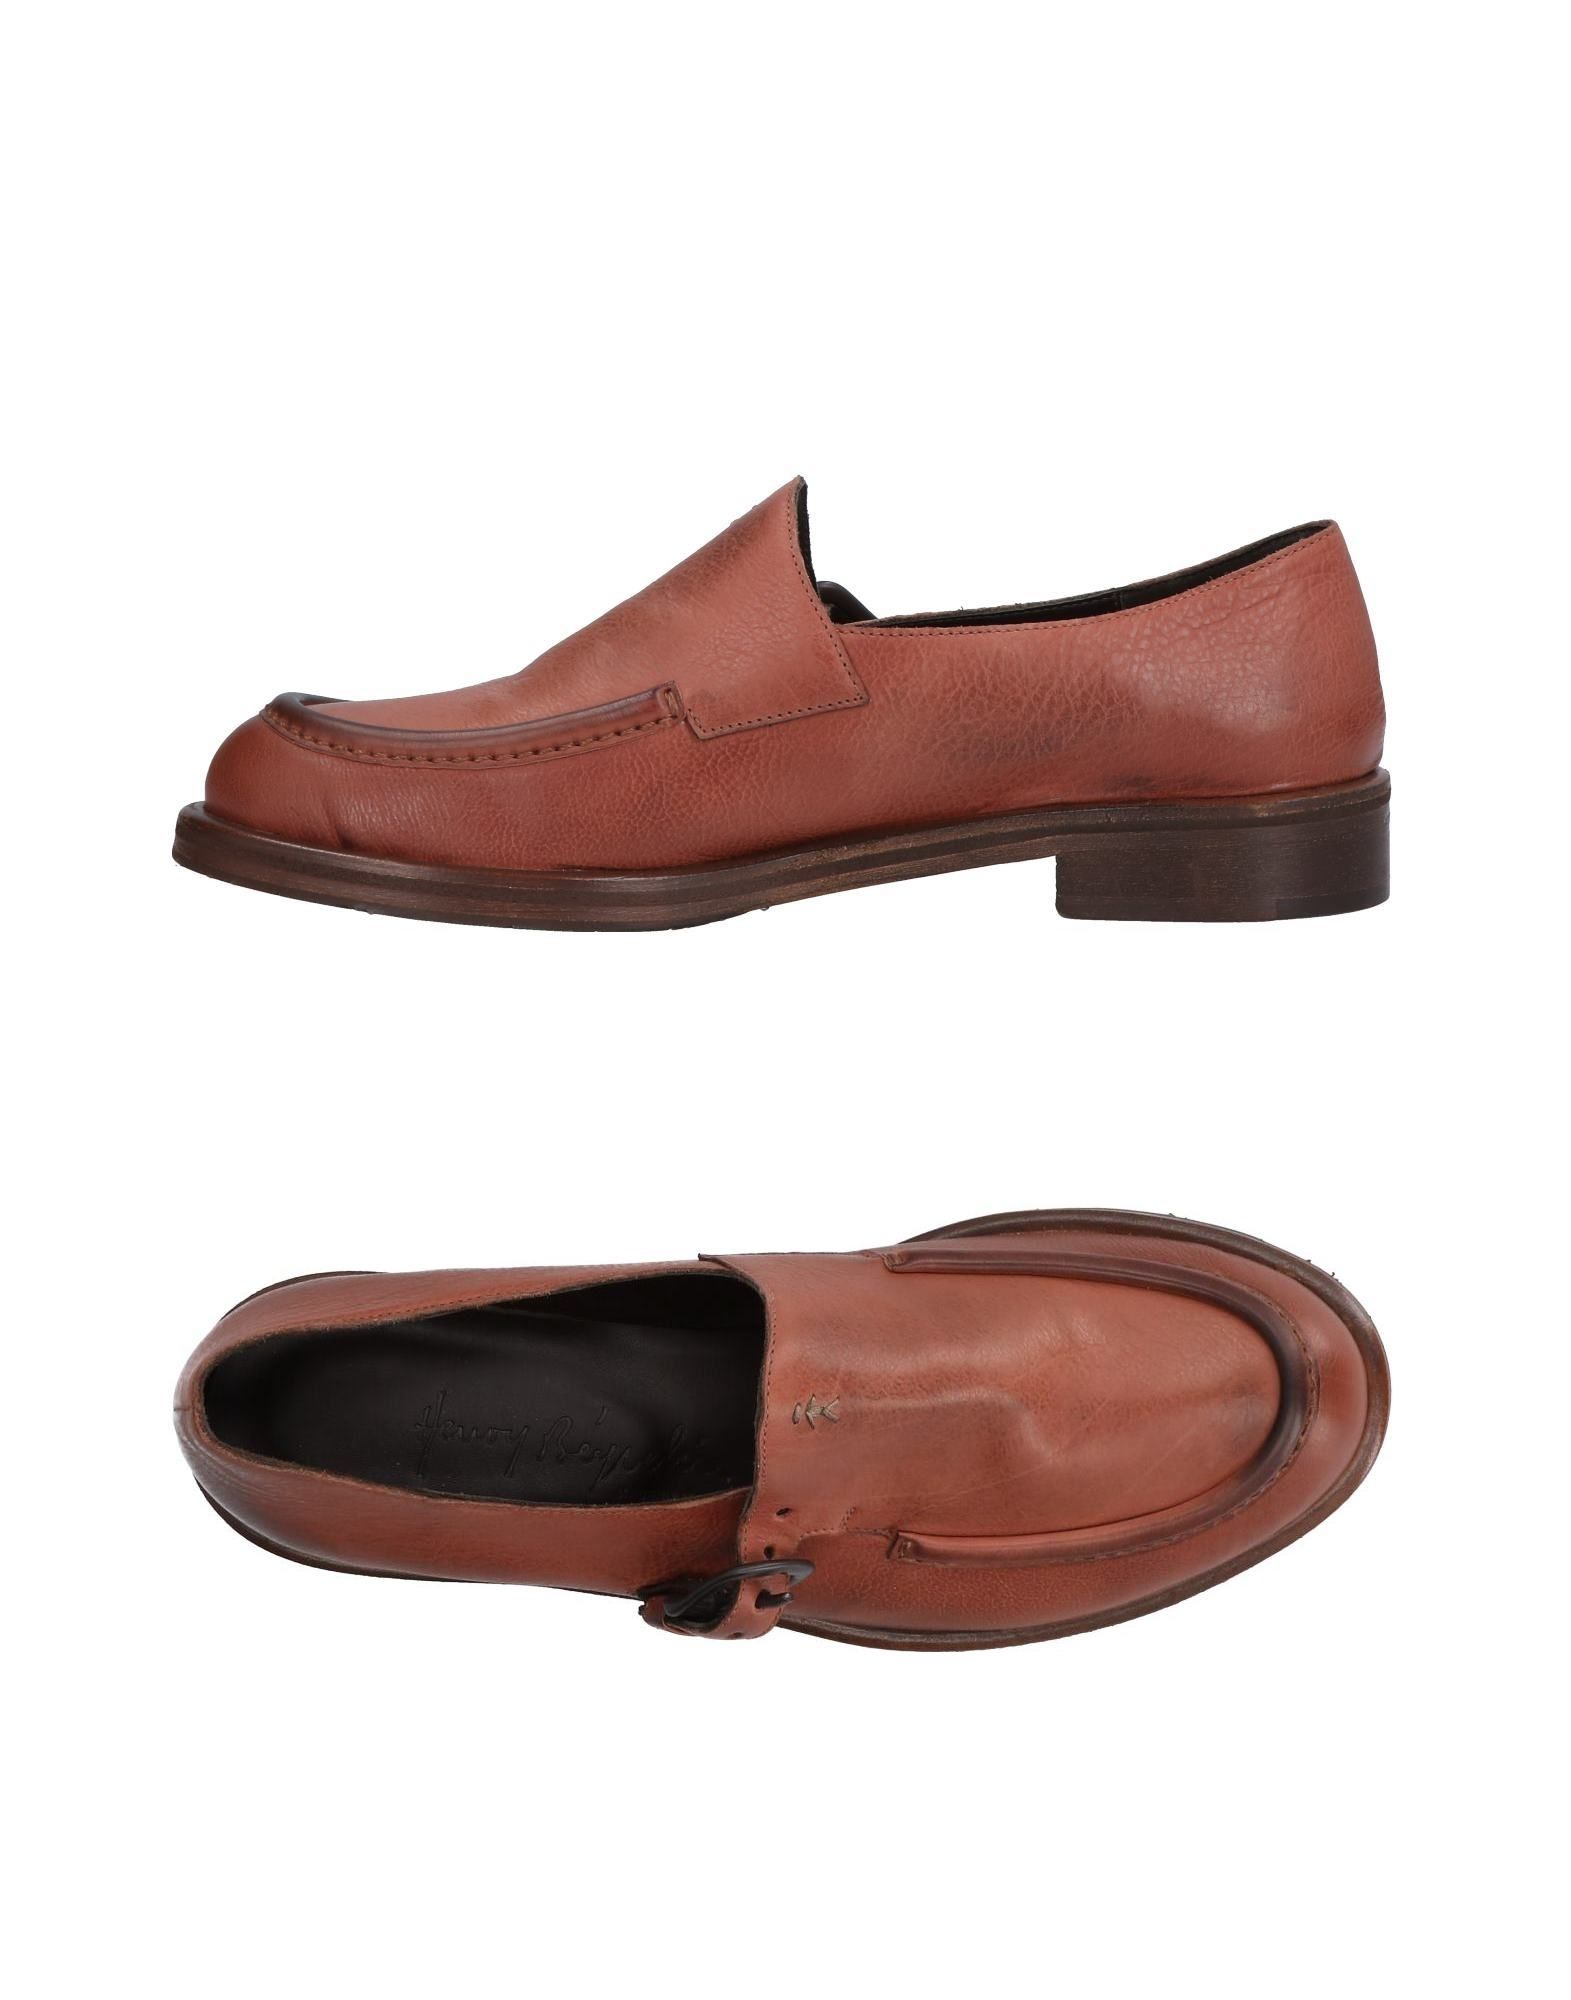 CHAUSSURES - MocassinsHenry Beguelin owy2MkyVQ8